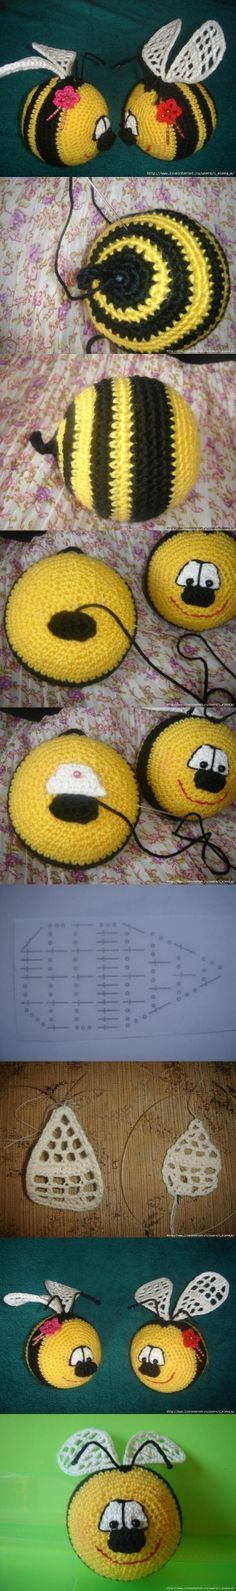 DIY Crochet Smiley Bee DIY Crochet Smiley Bee by diyforever